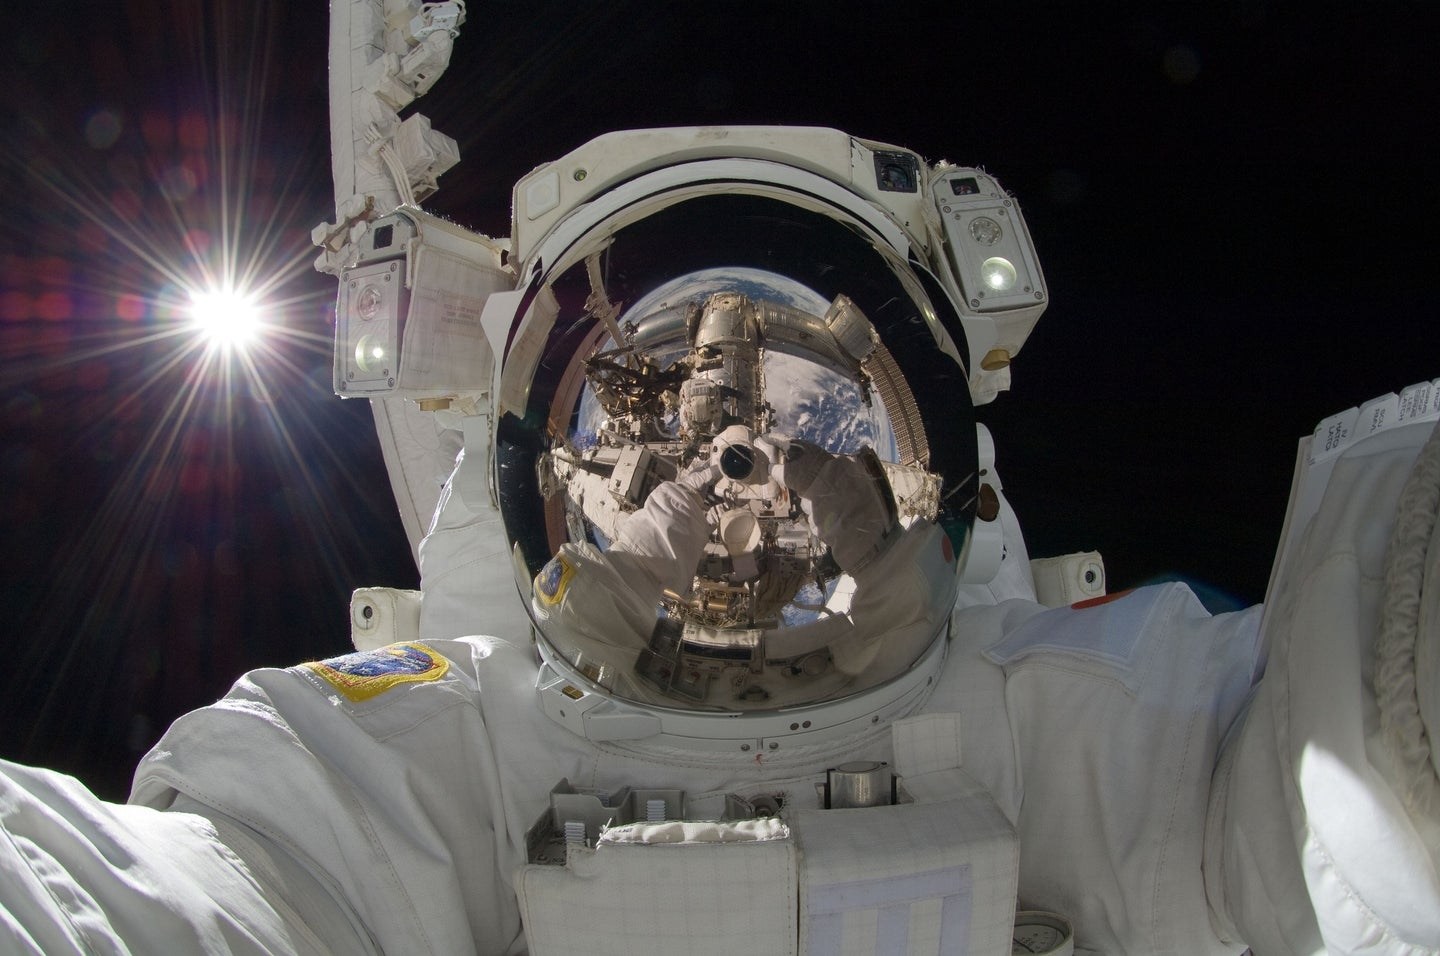 Most of us have viruses sleeping inside us, and spaceflight wakes them up